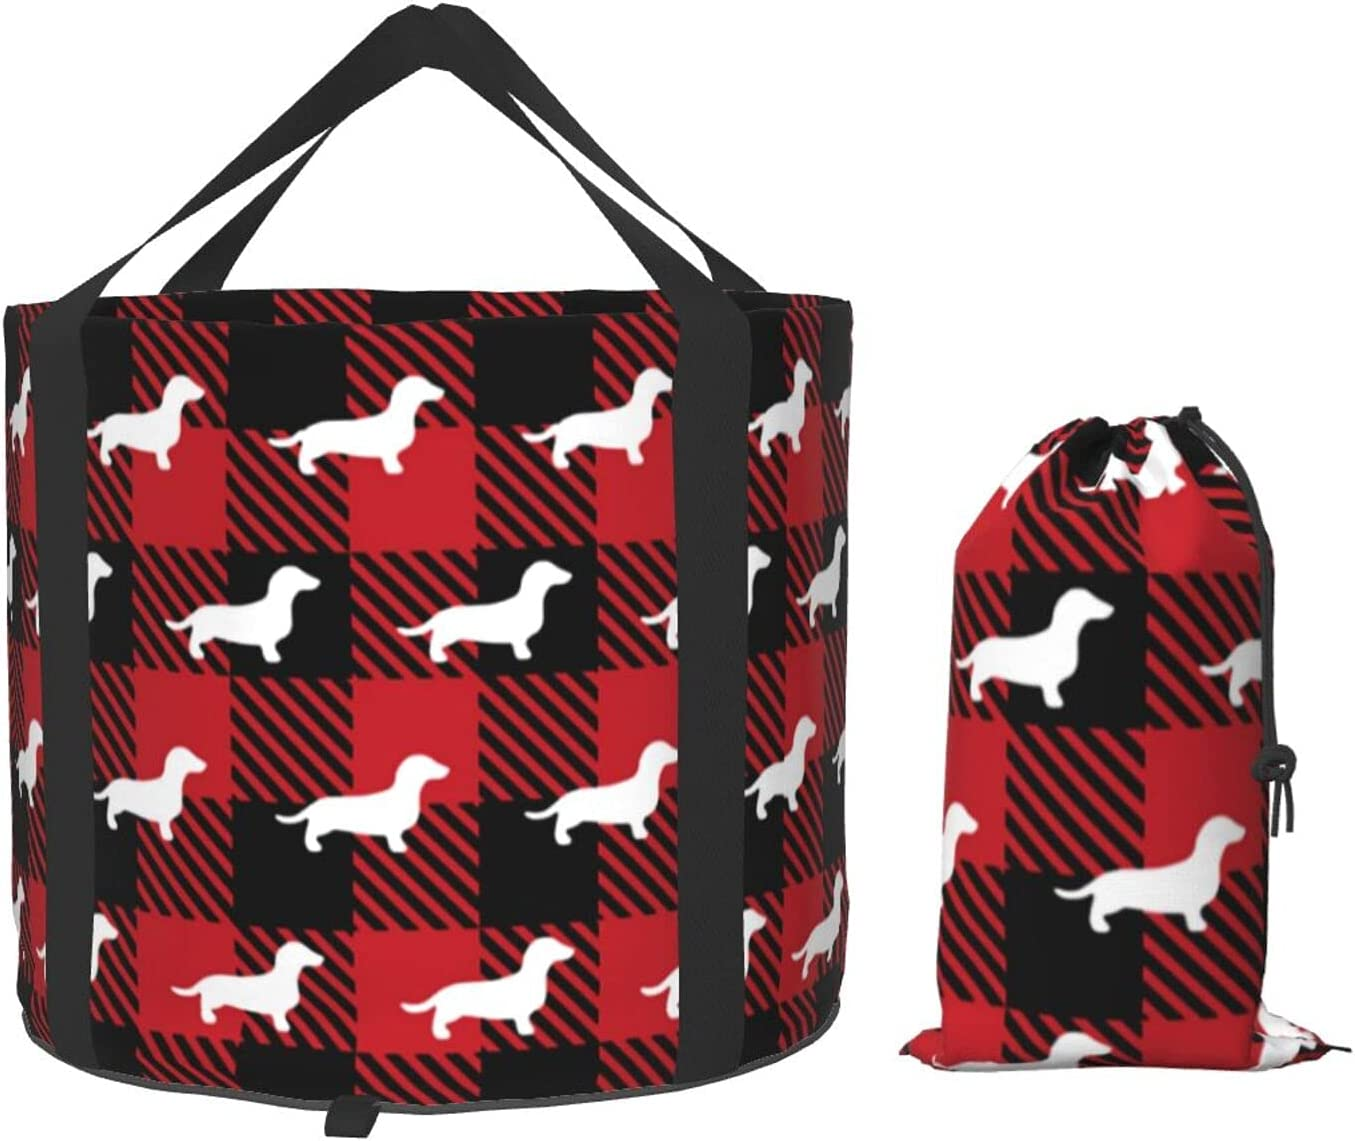 Multifunctional OFFicial site Portable Collapsible Bucket Selling rankings Pl Buffalo Dachshund